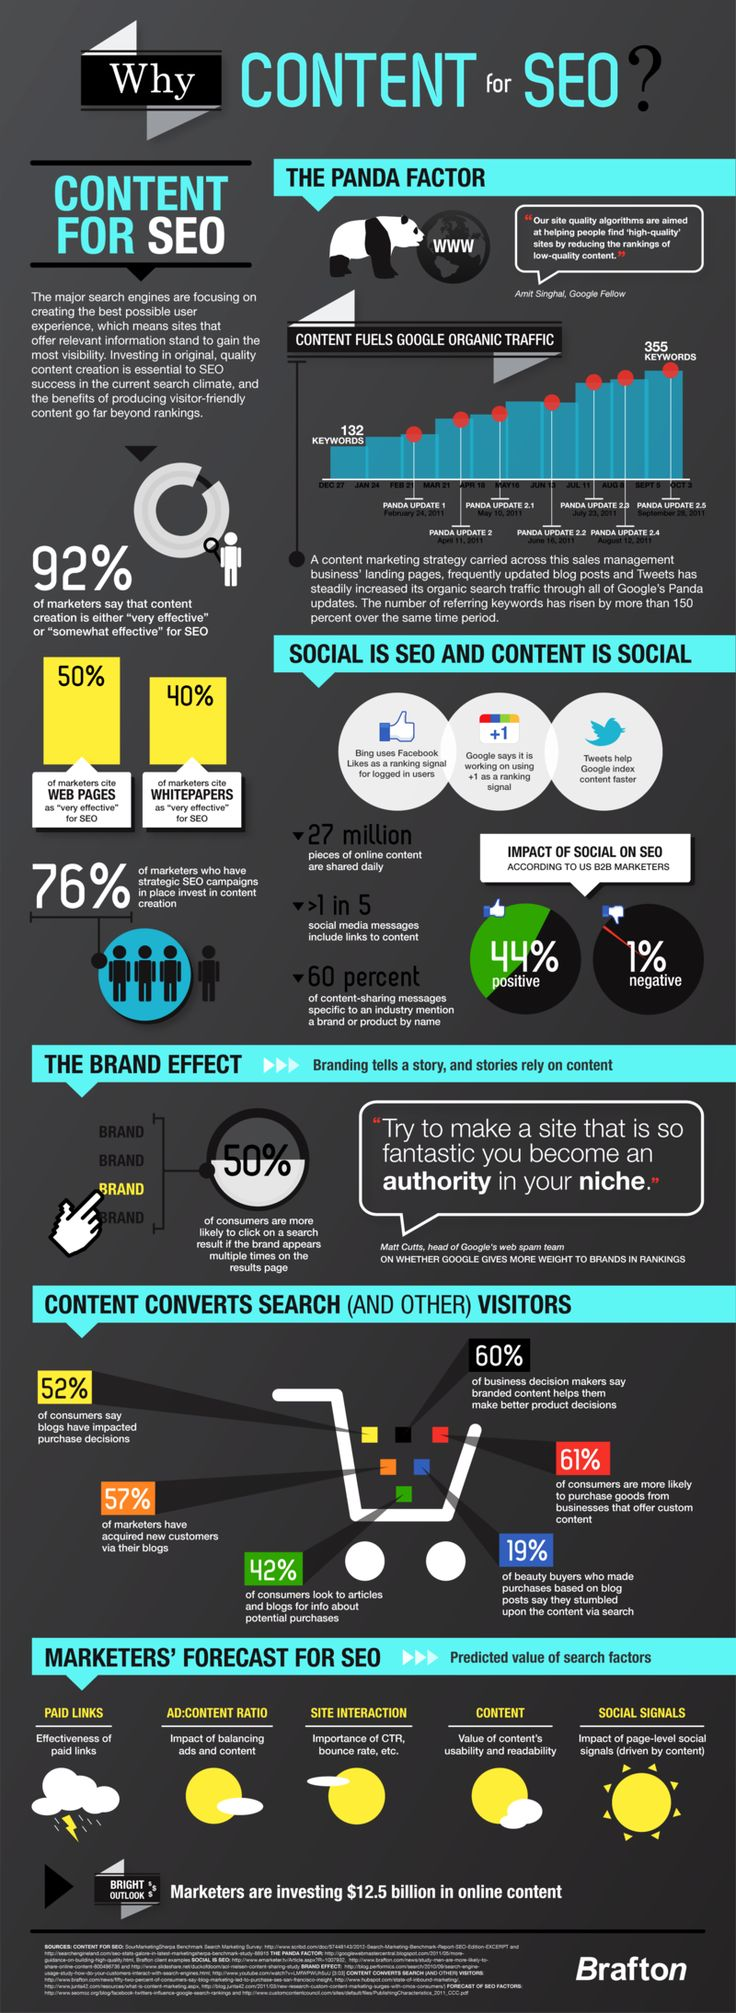 Why Is Content Creation And Social Important For SEO? #infographic